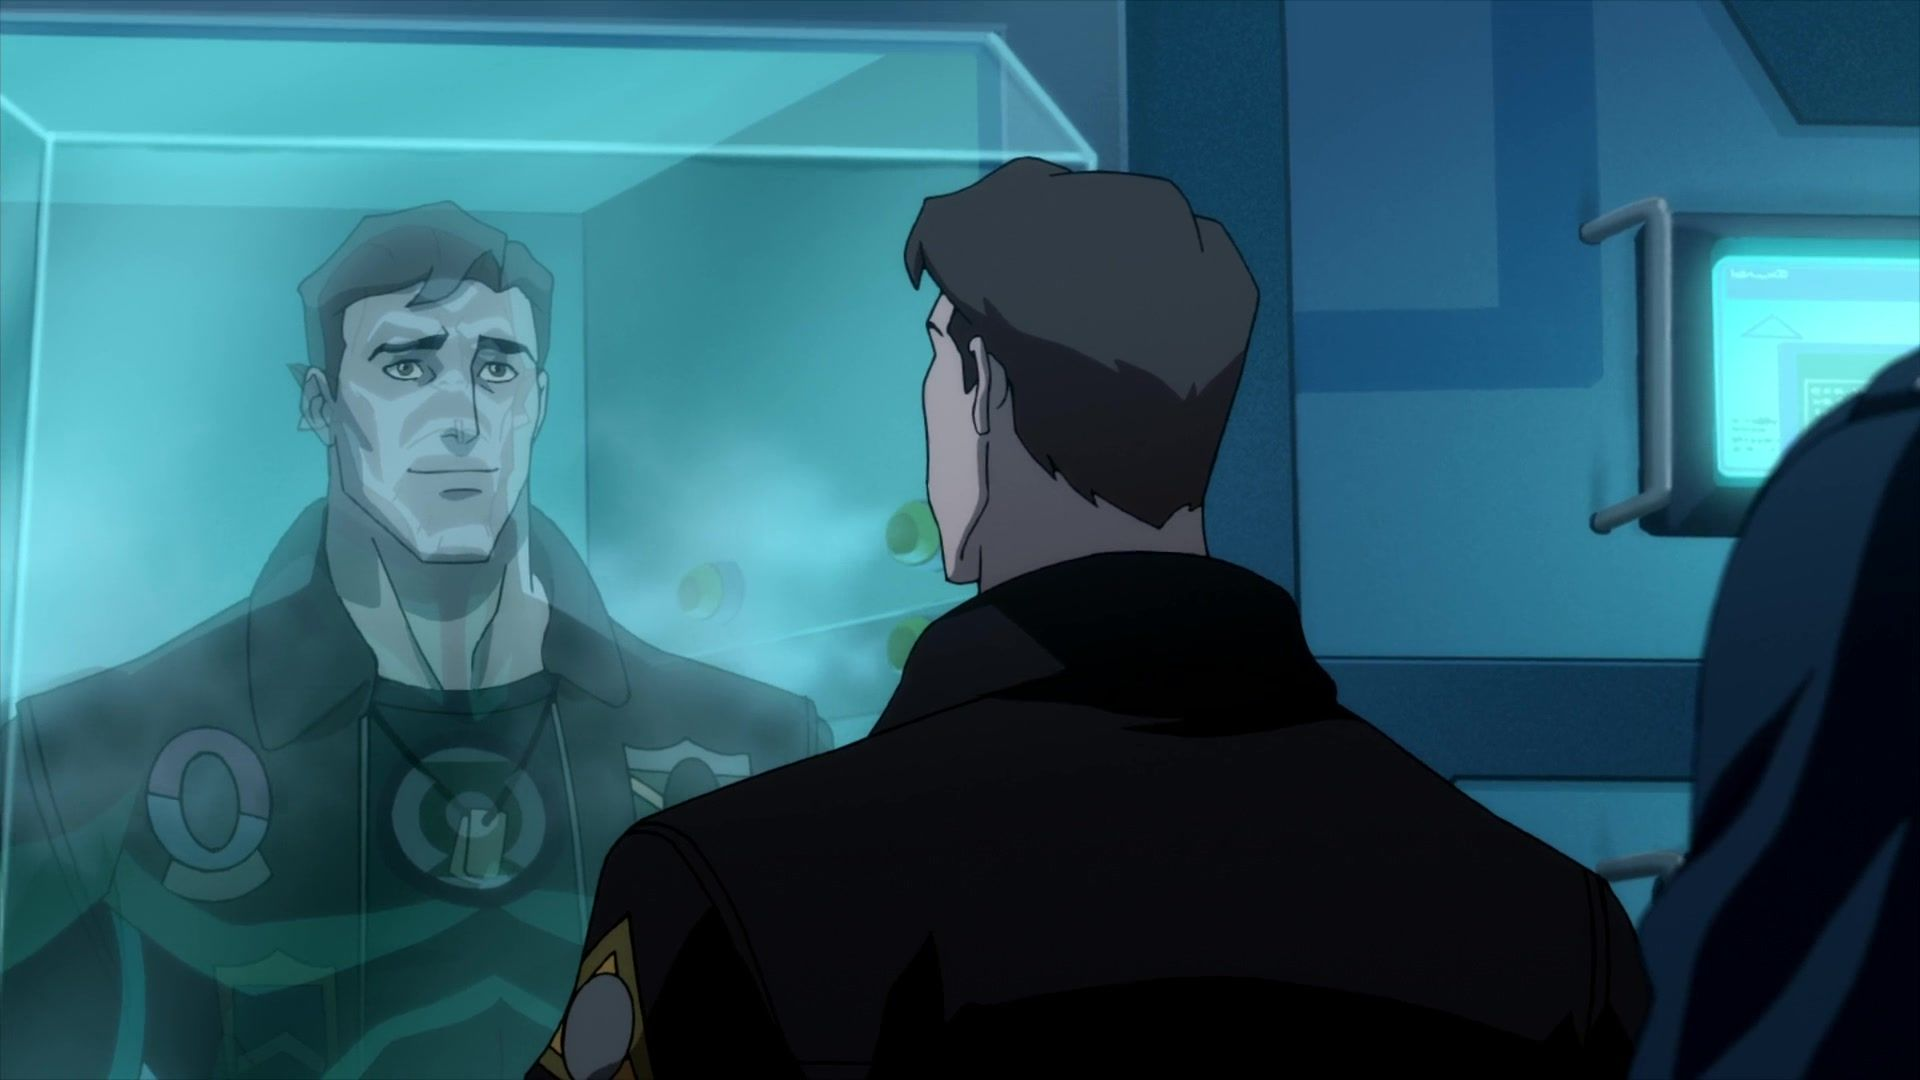 Justice League The Flashpoint Paradox 2013 Flash Point Paradox Green Lantern Hal Jordan Green Lantern